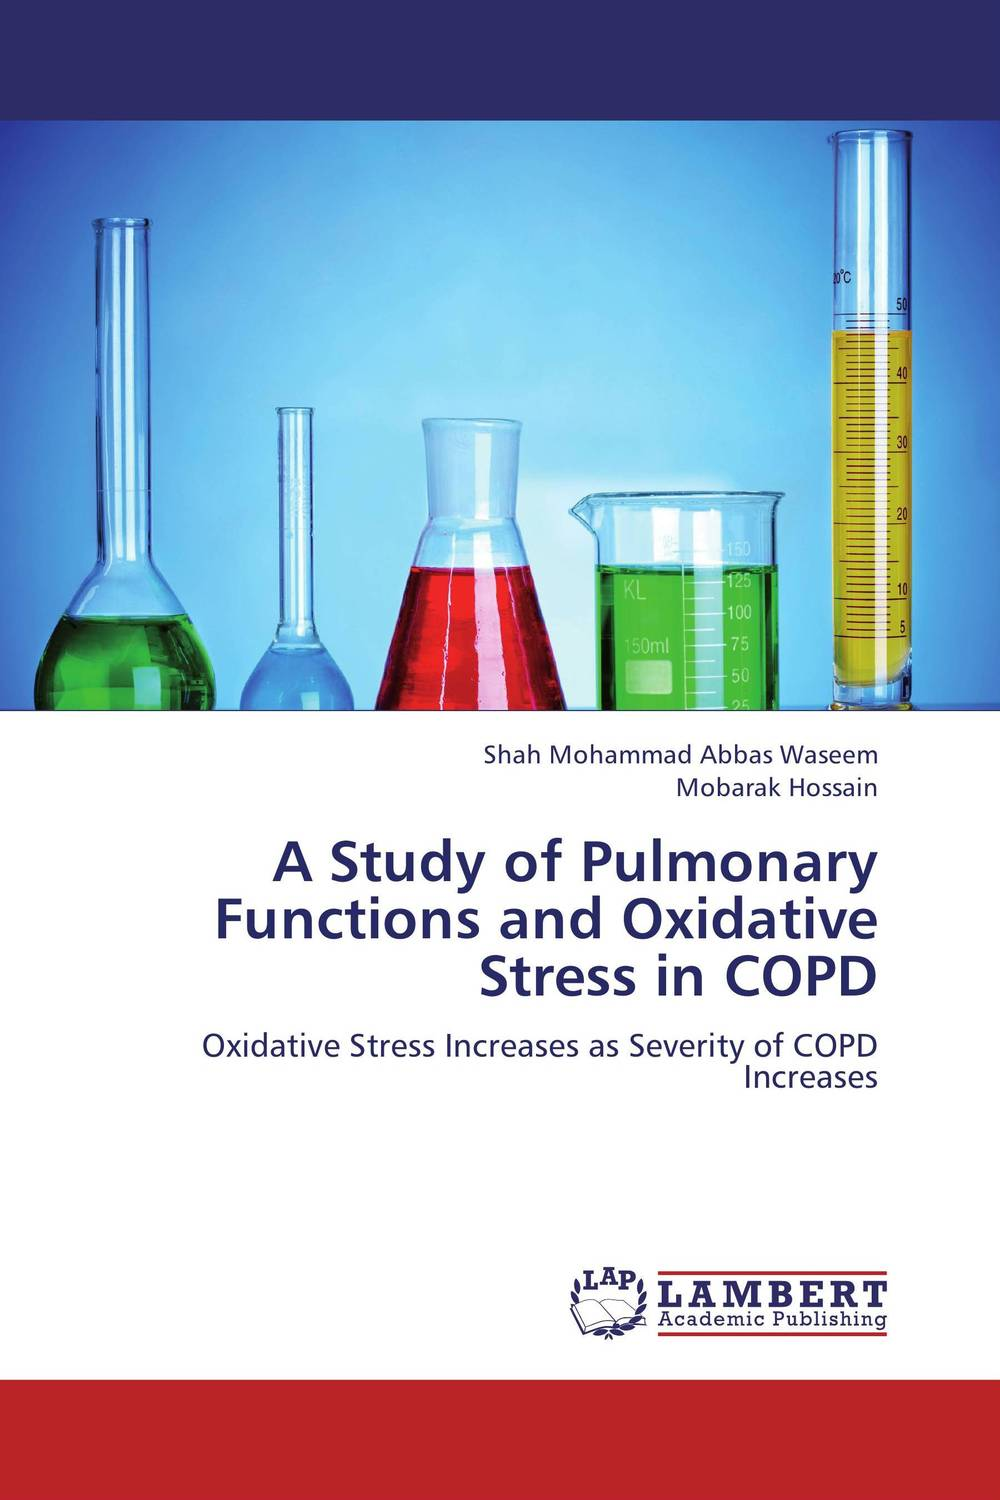 A Study of Pulmonary Functions and Oxidative Stress in COPD oxidative stability of meat products and the role of antioxidants